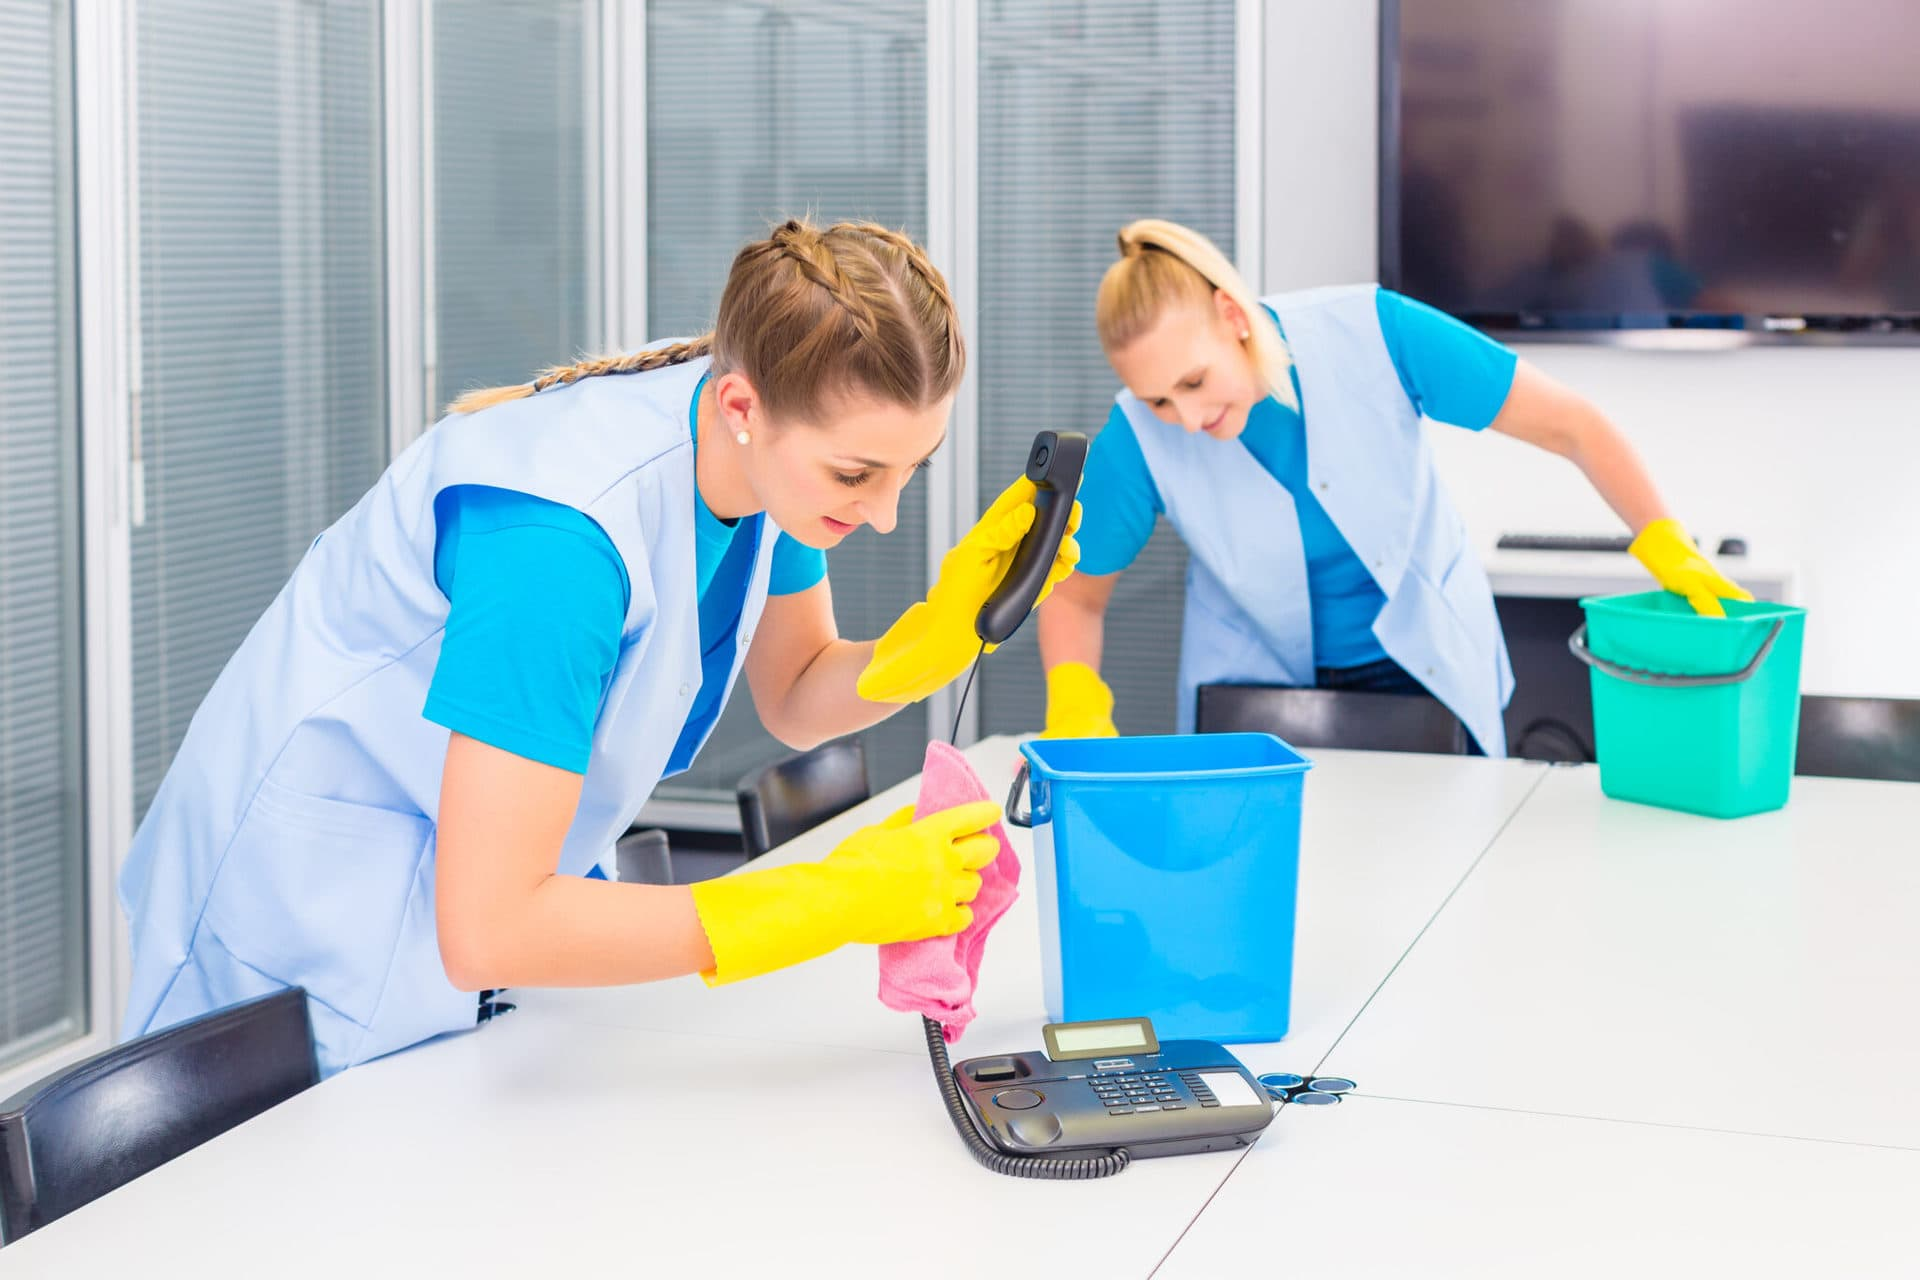 hire professional commercial cleaning services cleaning company for spring cleaning business